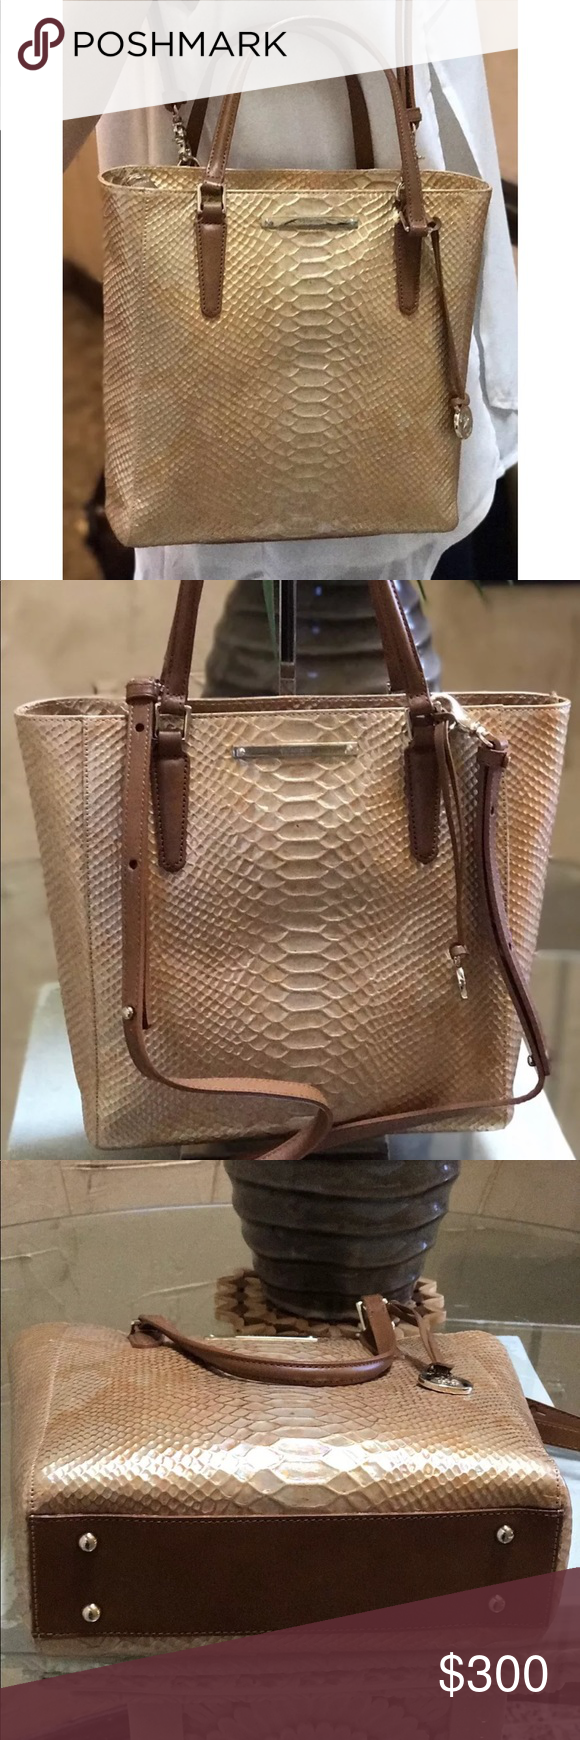 be0c654151 Brahmin Harrison Carryall Opal Seville Tote Bag Part of the Brahmin  Harrison Opal collection.made